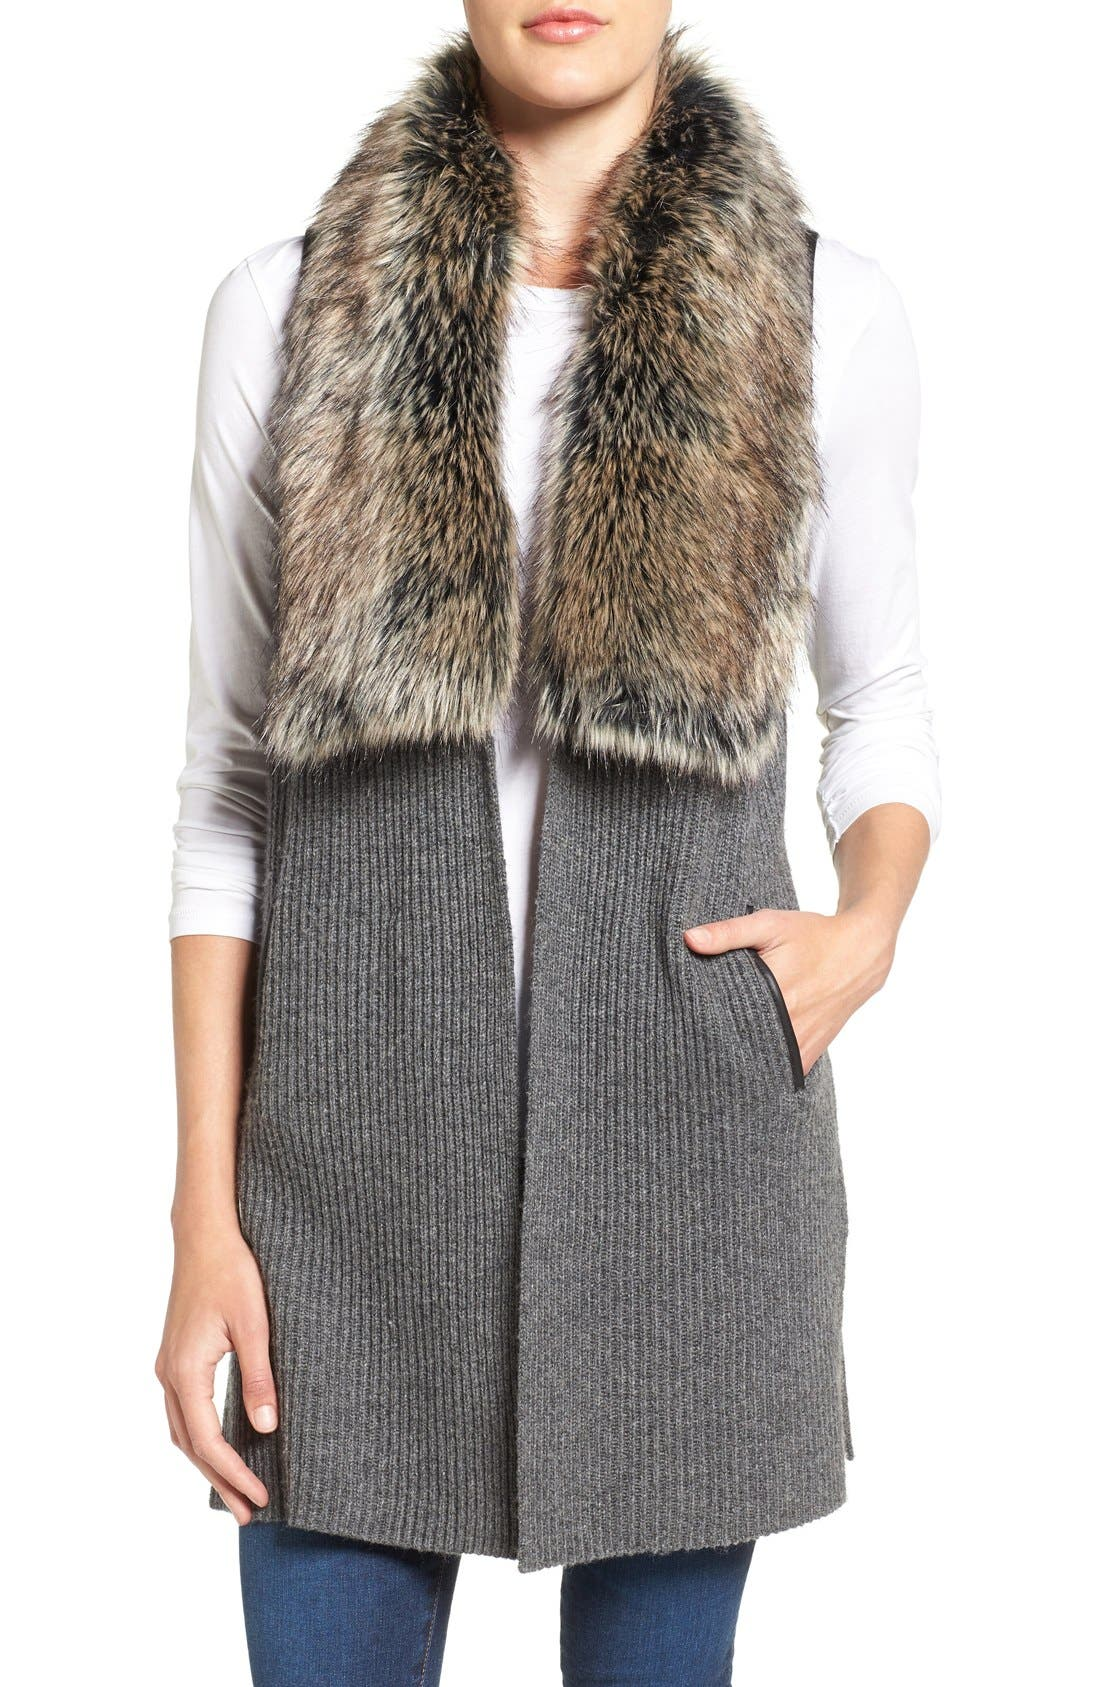 Faux Fur Trim Collar This vest has all the features you've come to love The Plus Project Women's Plus Size Quilted Puffer Vest with Hood and Removable Faux Fur Trim. by The Plus Project. $ $ 49 95 Prime. Exclusively for Prime Members. Some sizes/colors are Prime eligible.